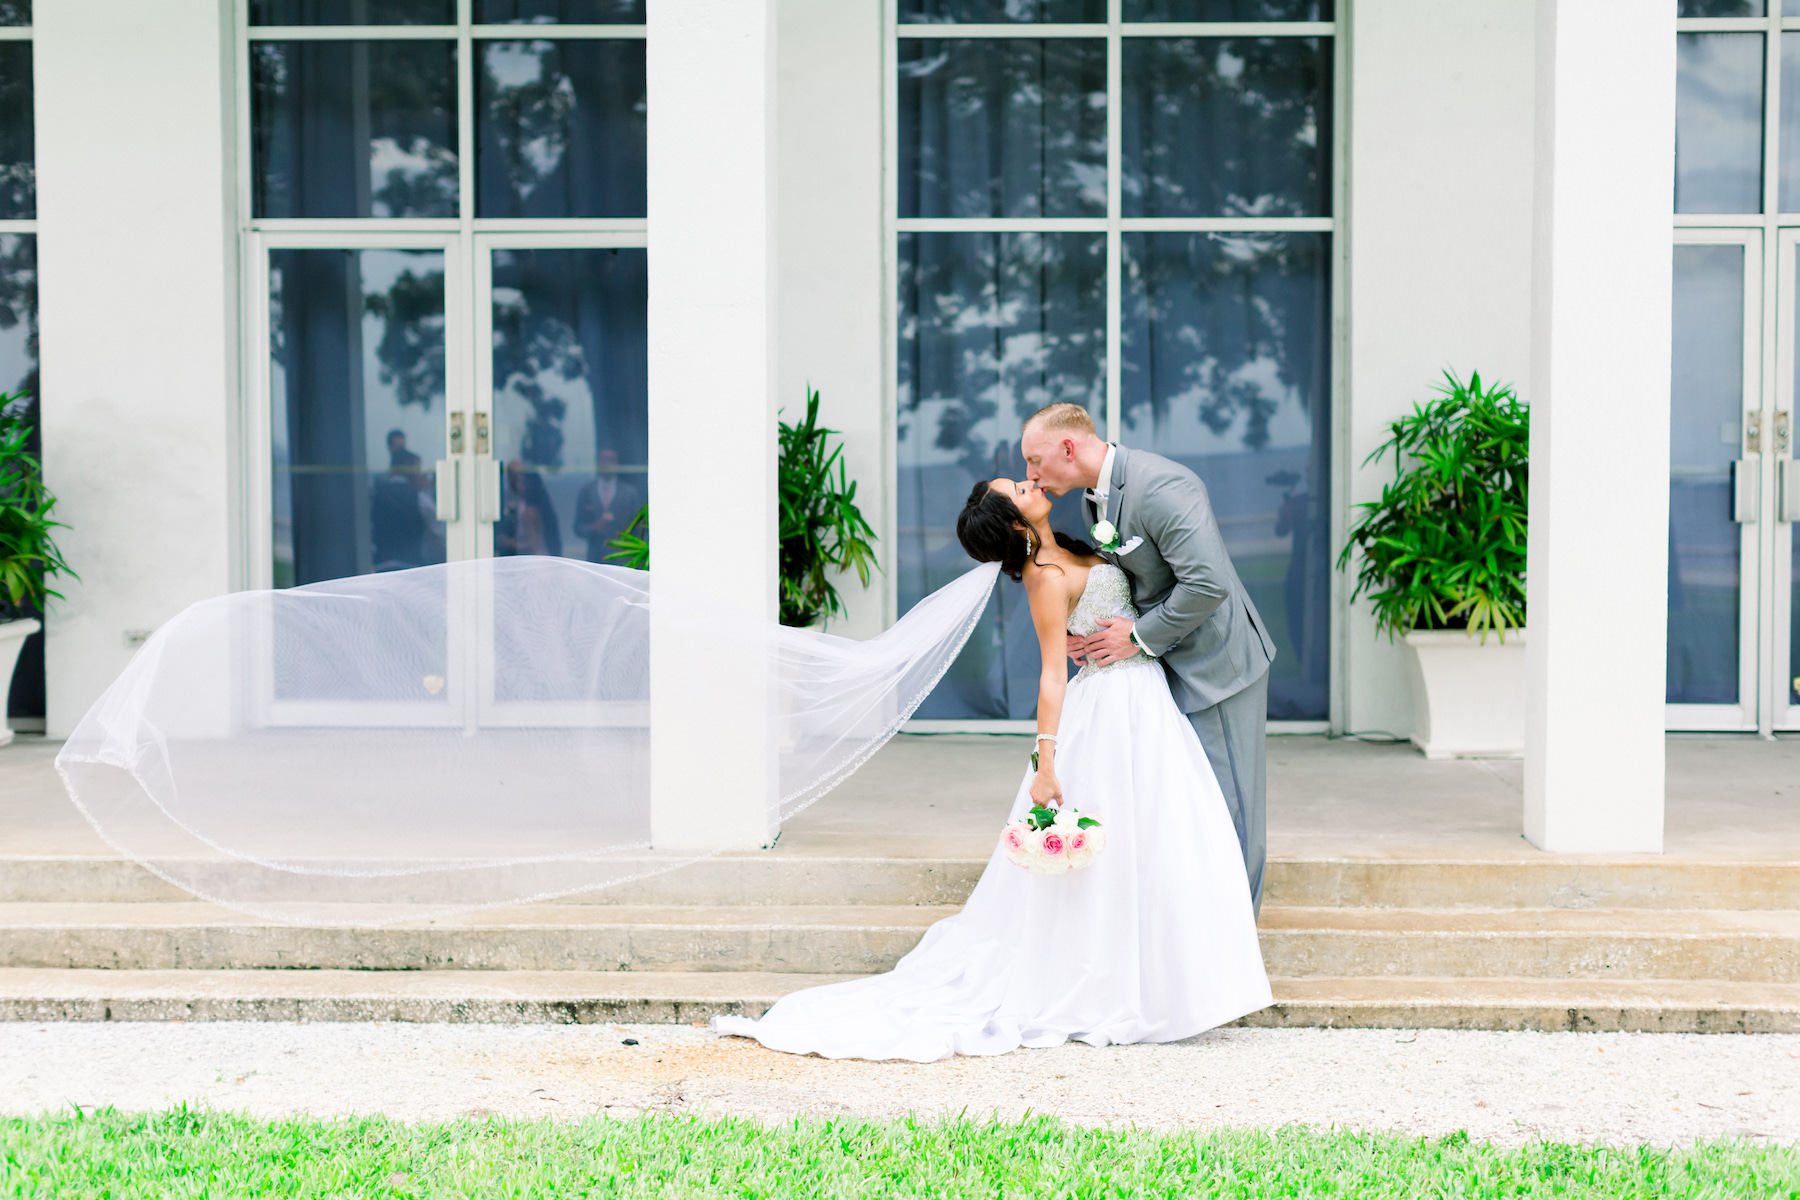 Romantic Creative Bride and Groom with Veil Blowing in the Wind First Look Wedding Portrait | Wedding Photographer Shauna and Jordon Photography | Wedding Venue Tampa Garden Club | Wedding Dress Truly Forever Bridal